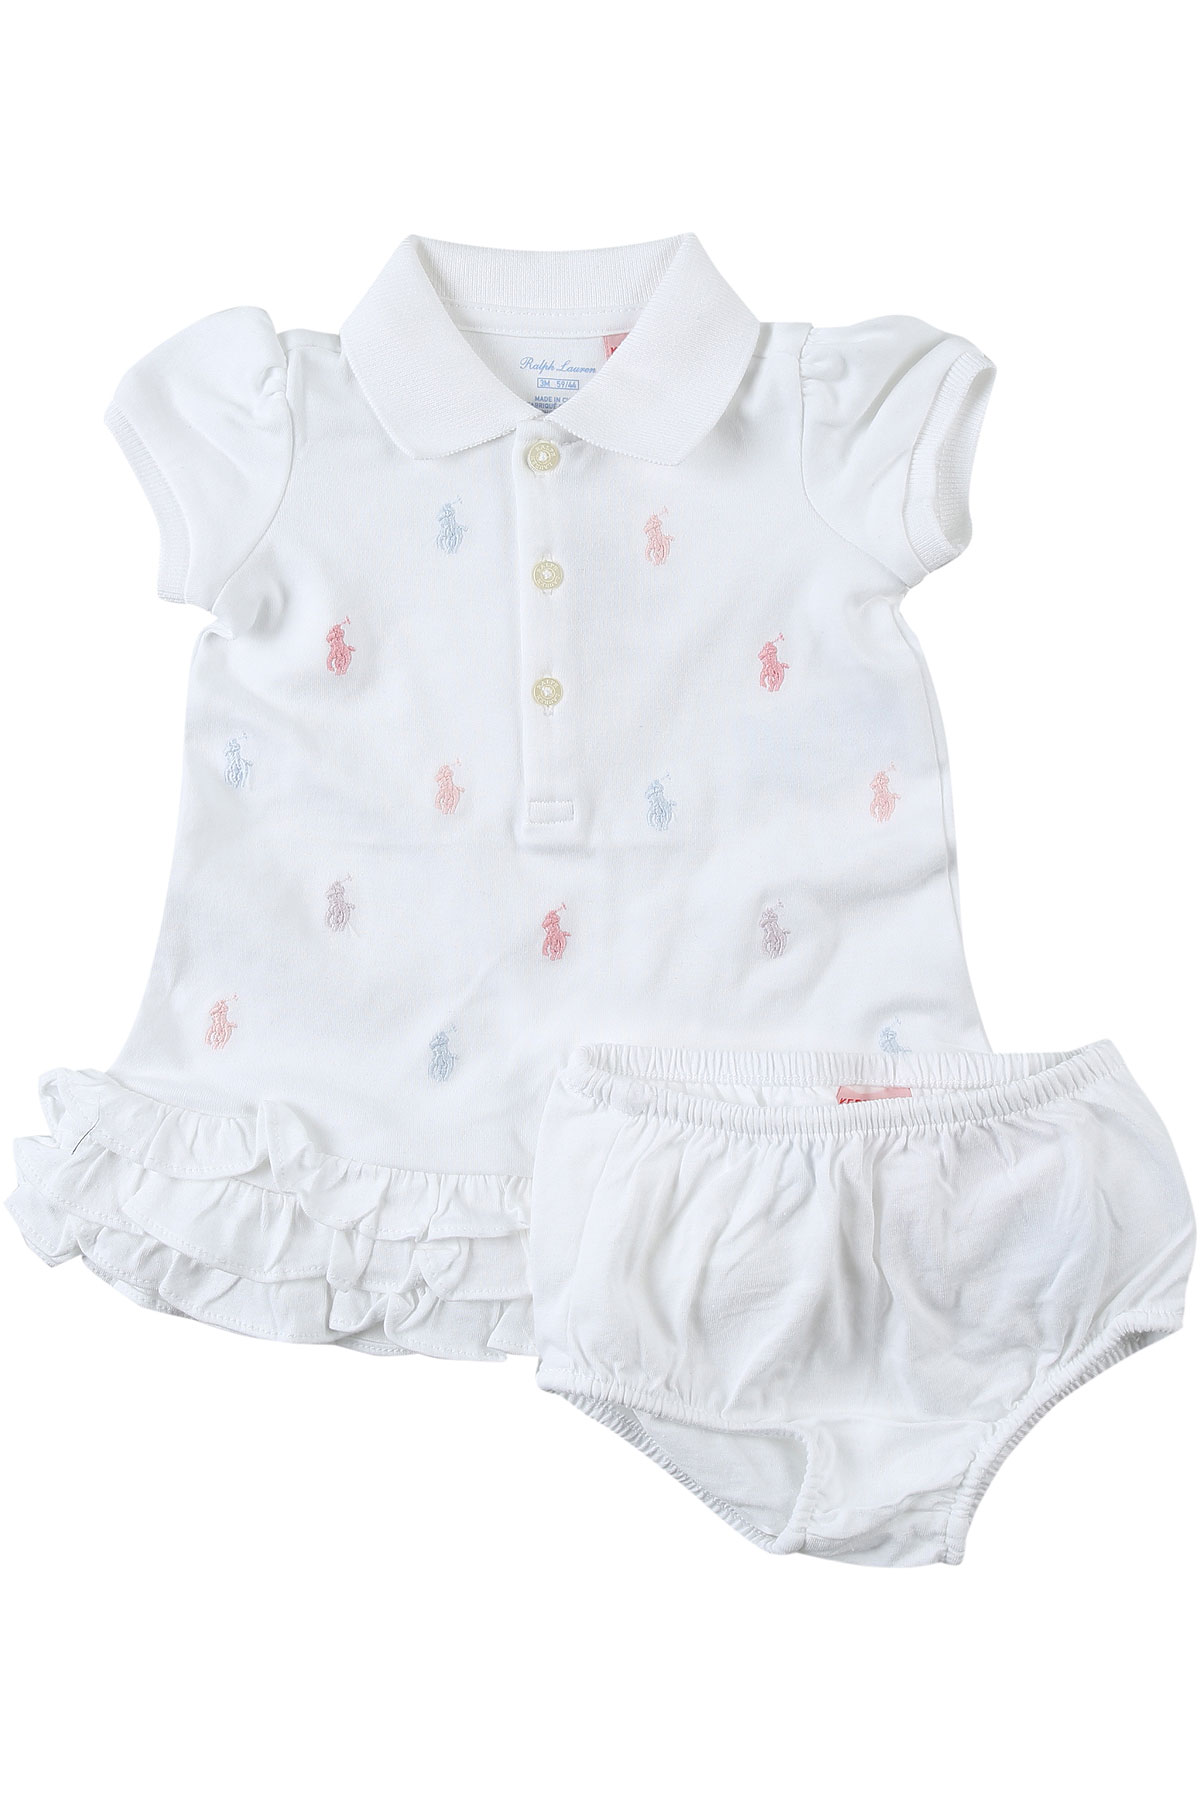 Ralph Lauren Baby Sets for Girls On Sale, White, Cotton, 2019, 12M 18M 2Y 9M 9M